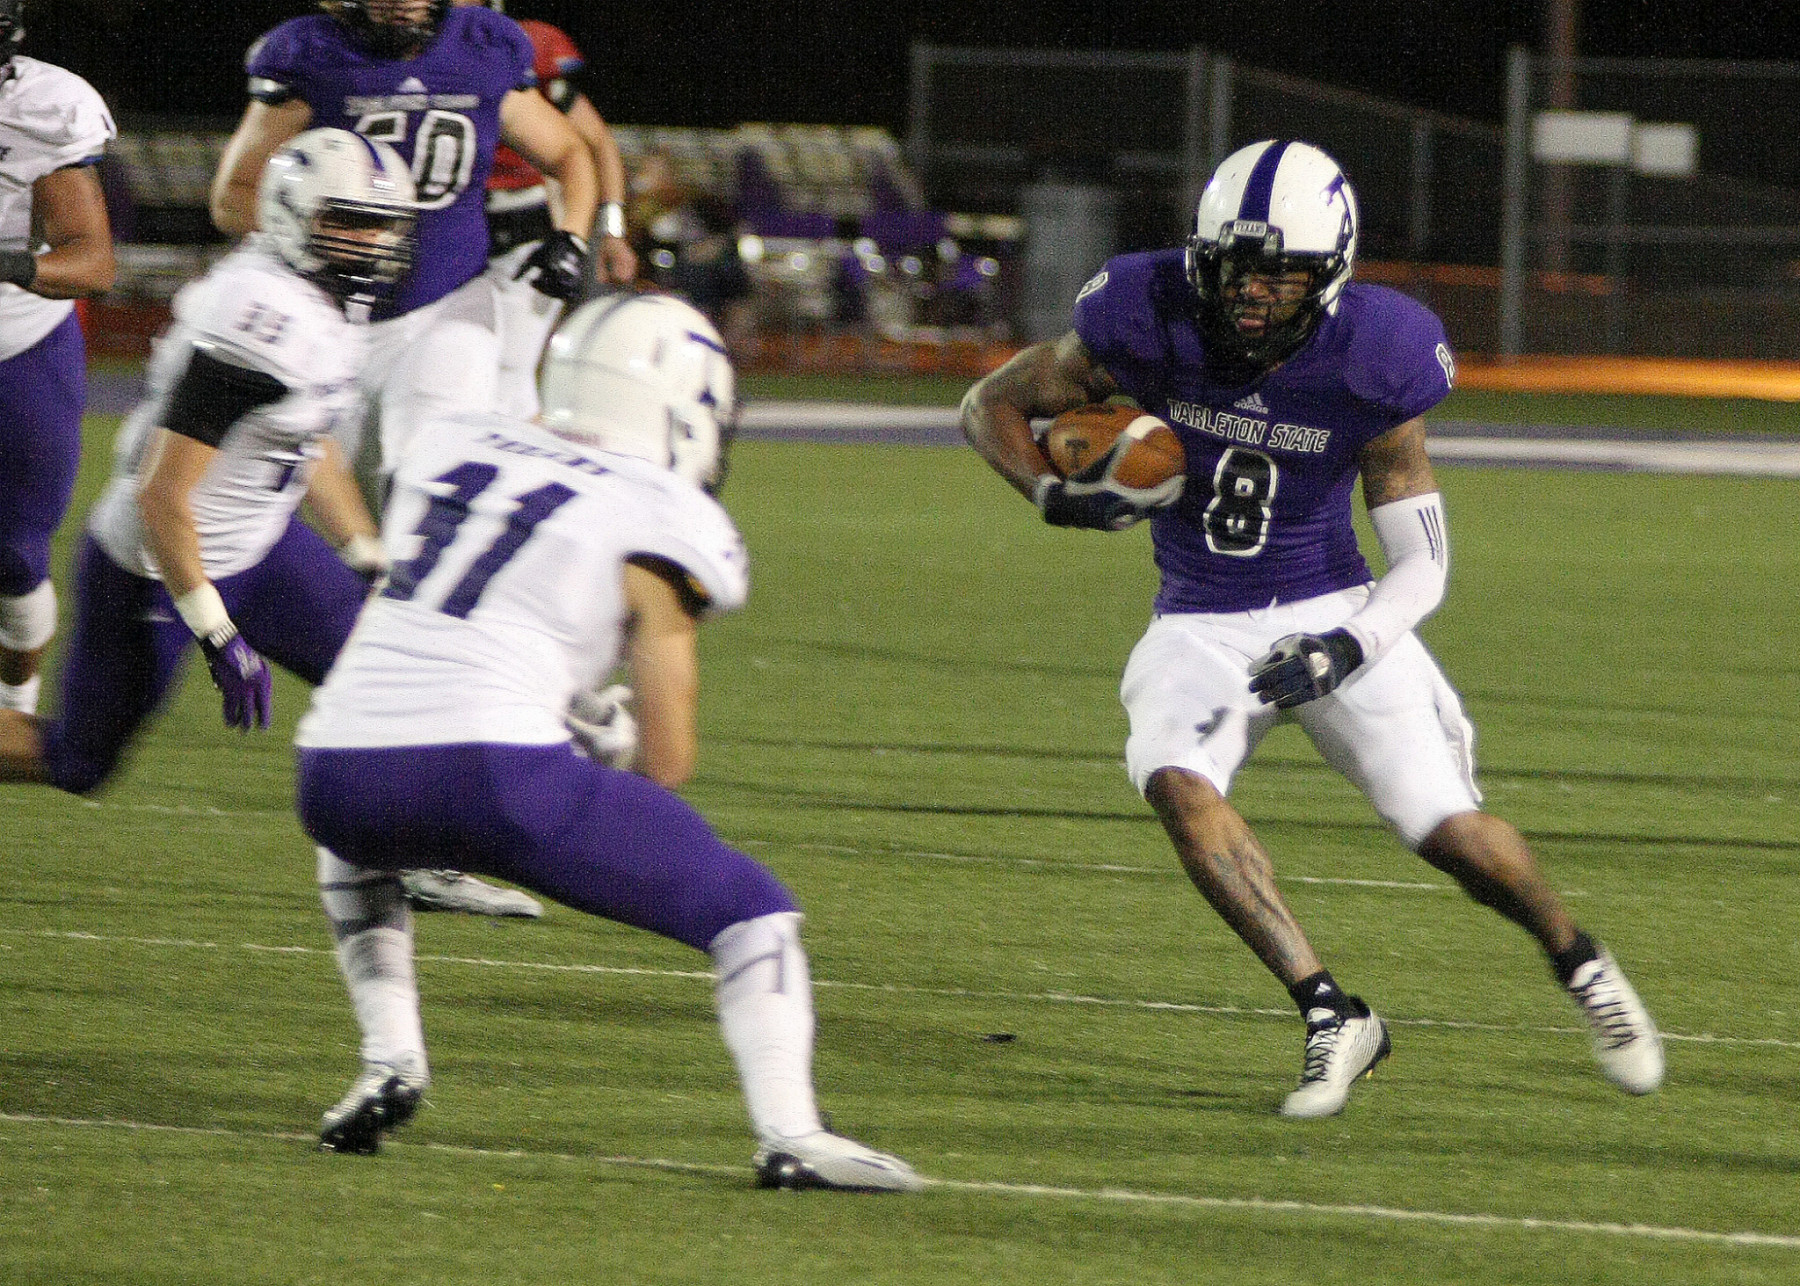 Bubba Tandy turns a short reception into a big gain for Purple during the Tarleton spring game. || BRAD KEITH/TheFlashToday.com